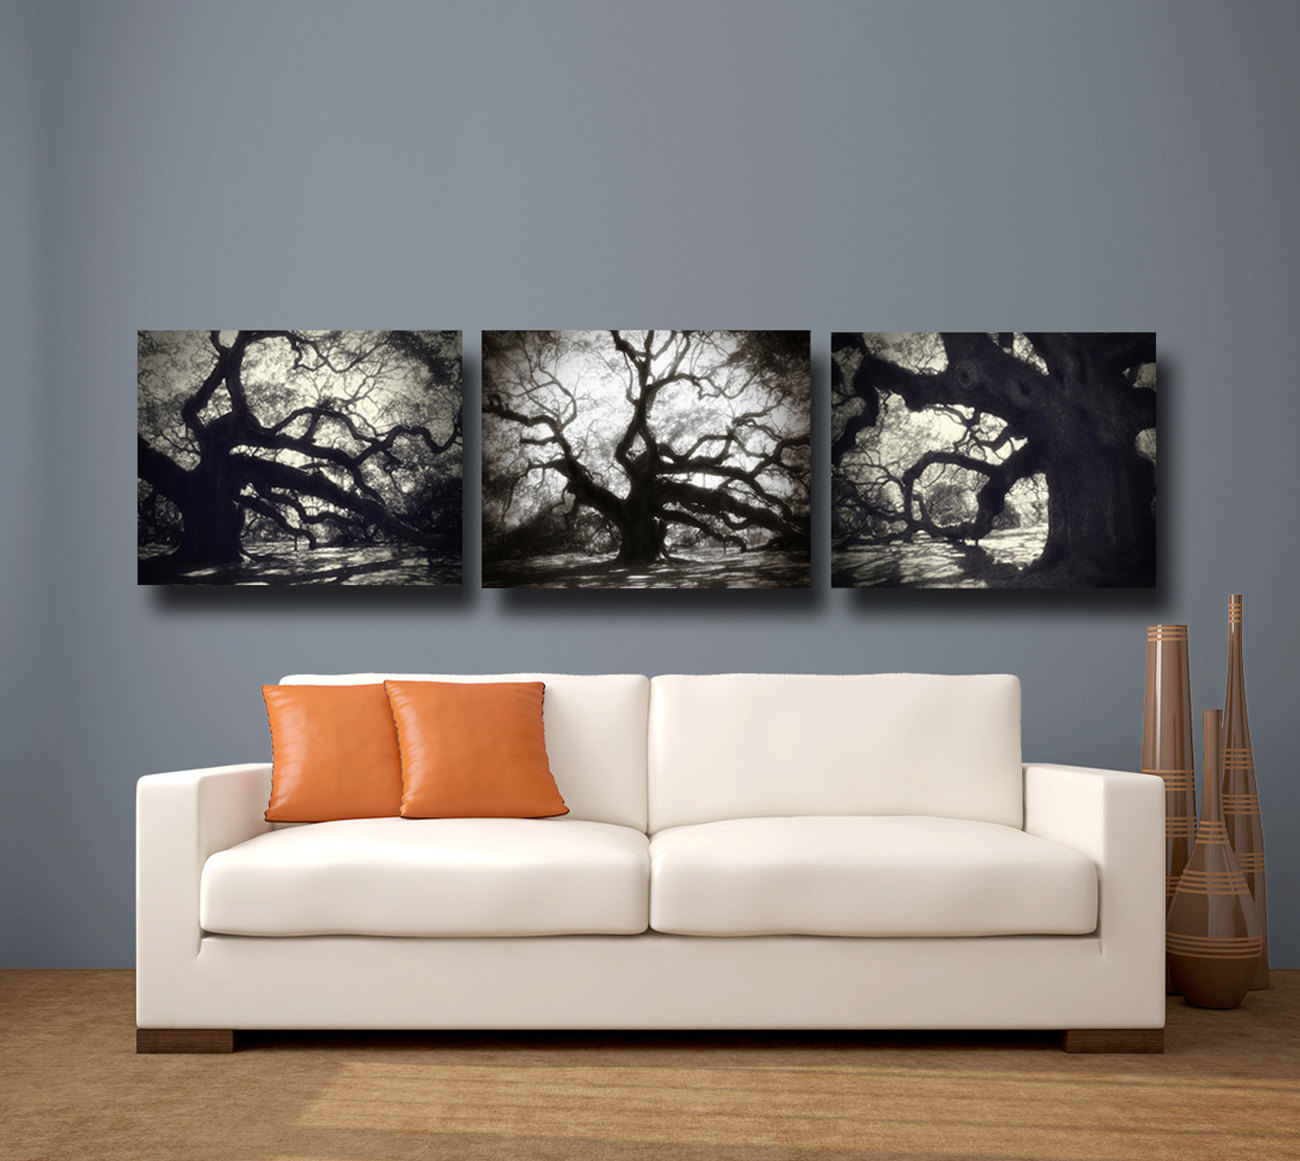 30 Creative and Easy DIY Canvas Wall Art Ideas - The WoW Style